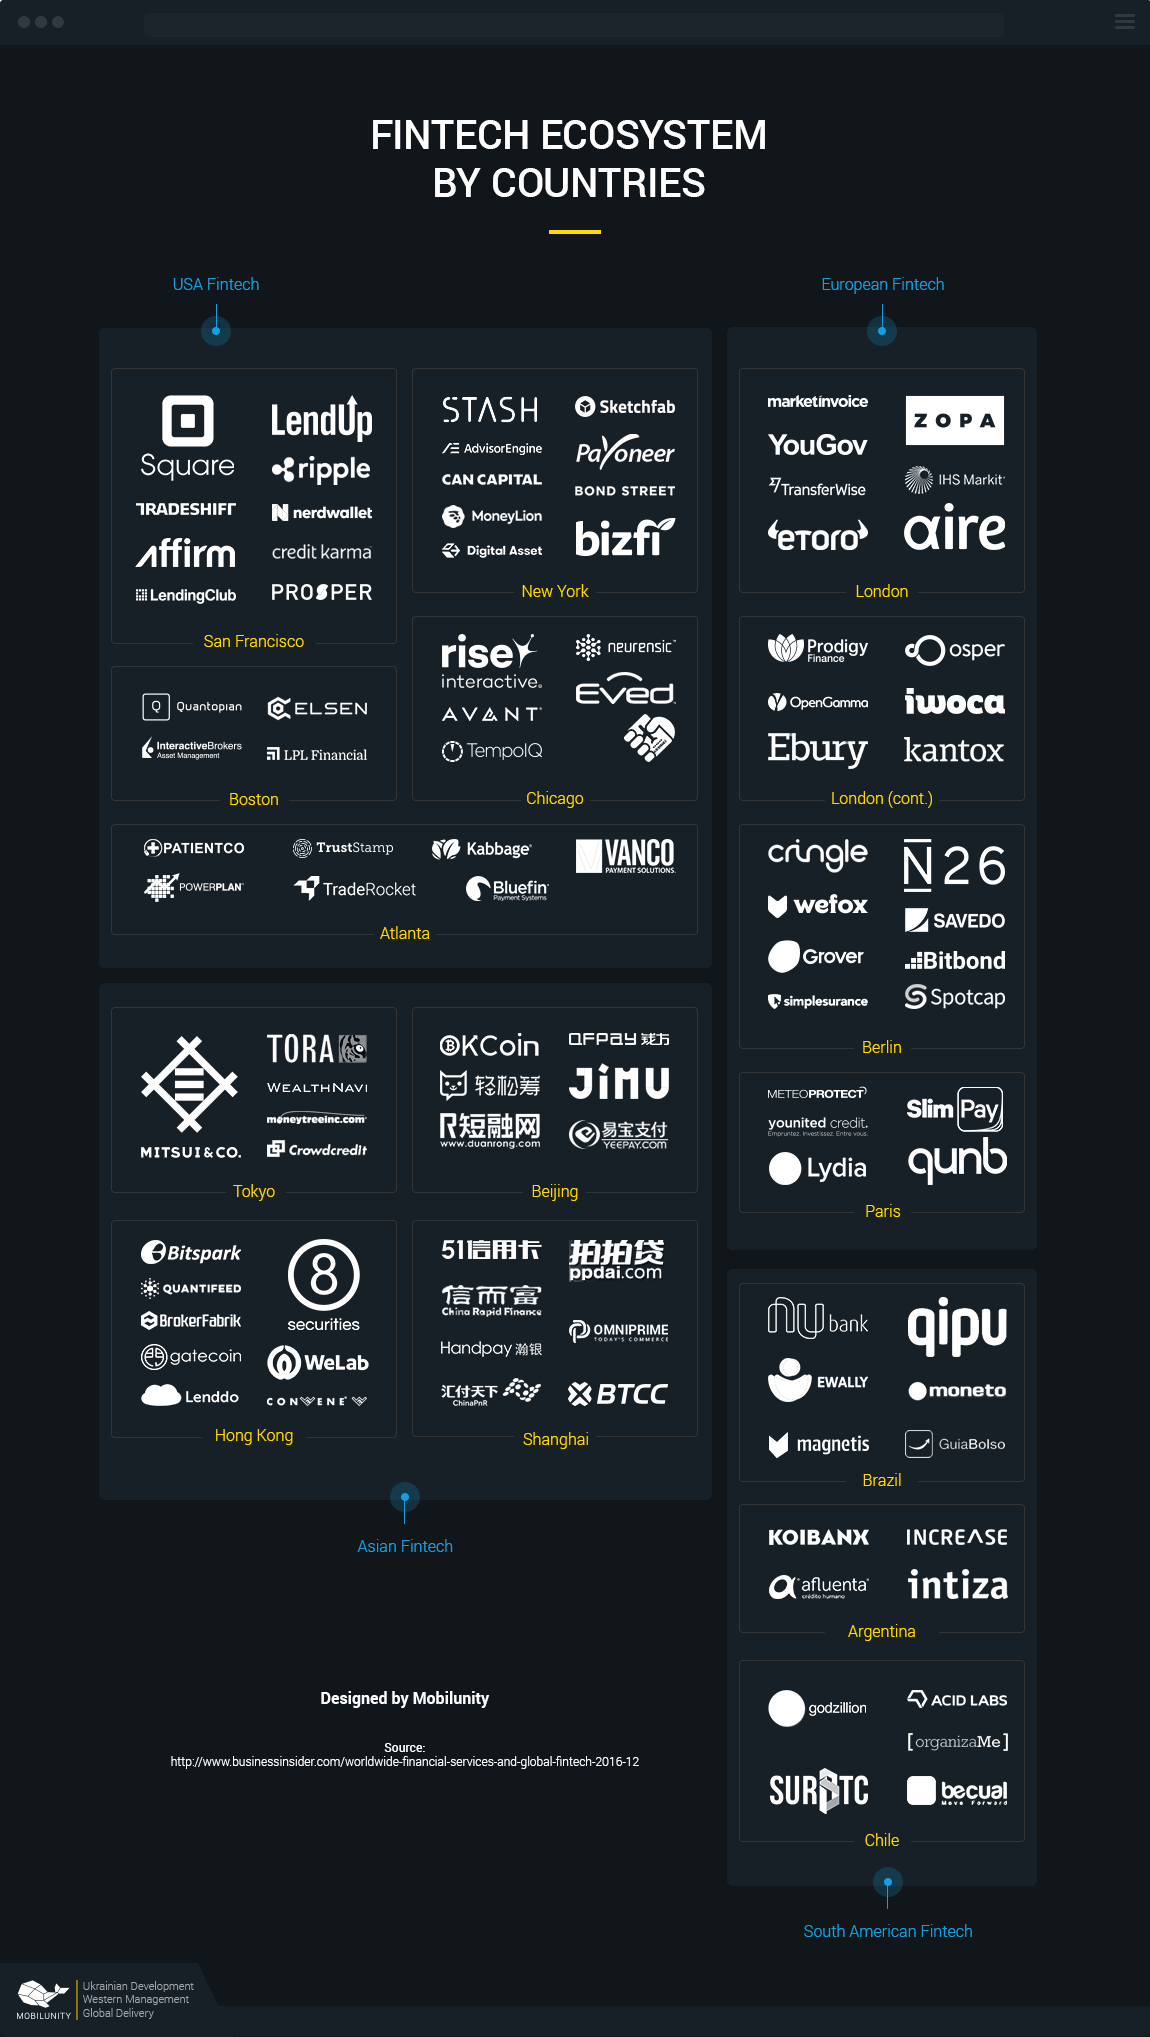 Fintech Ecosystem and Landscape by countries